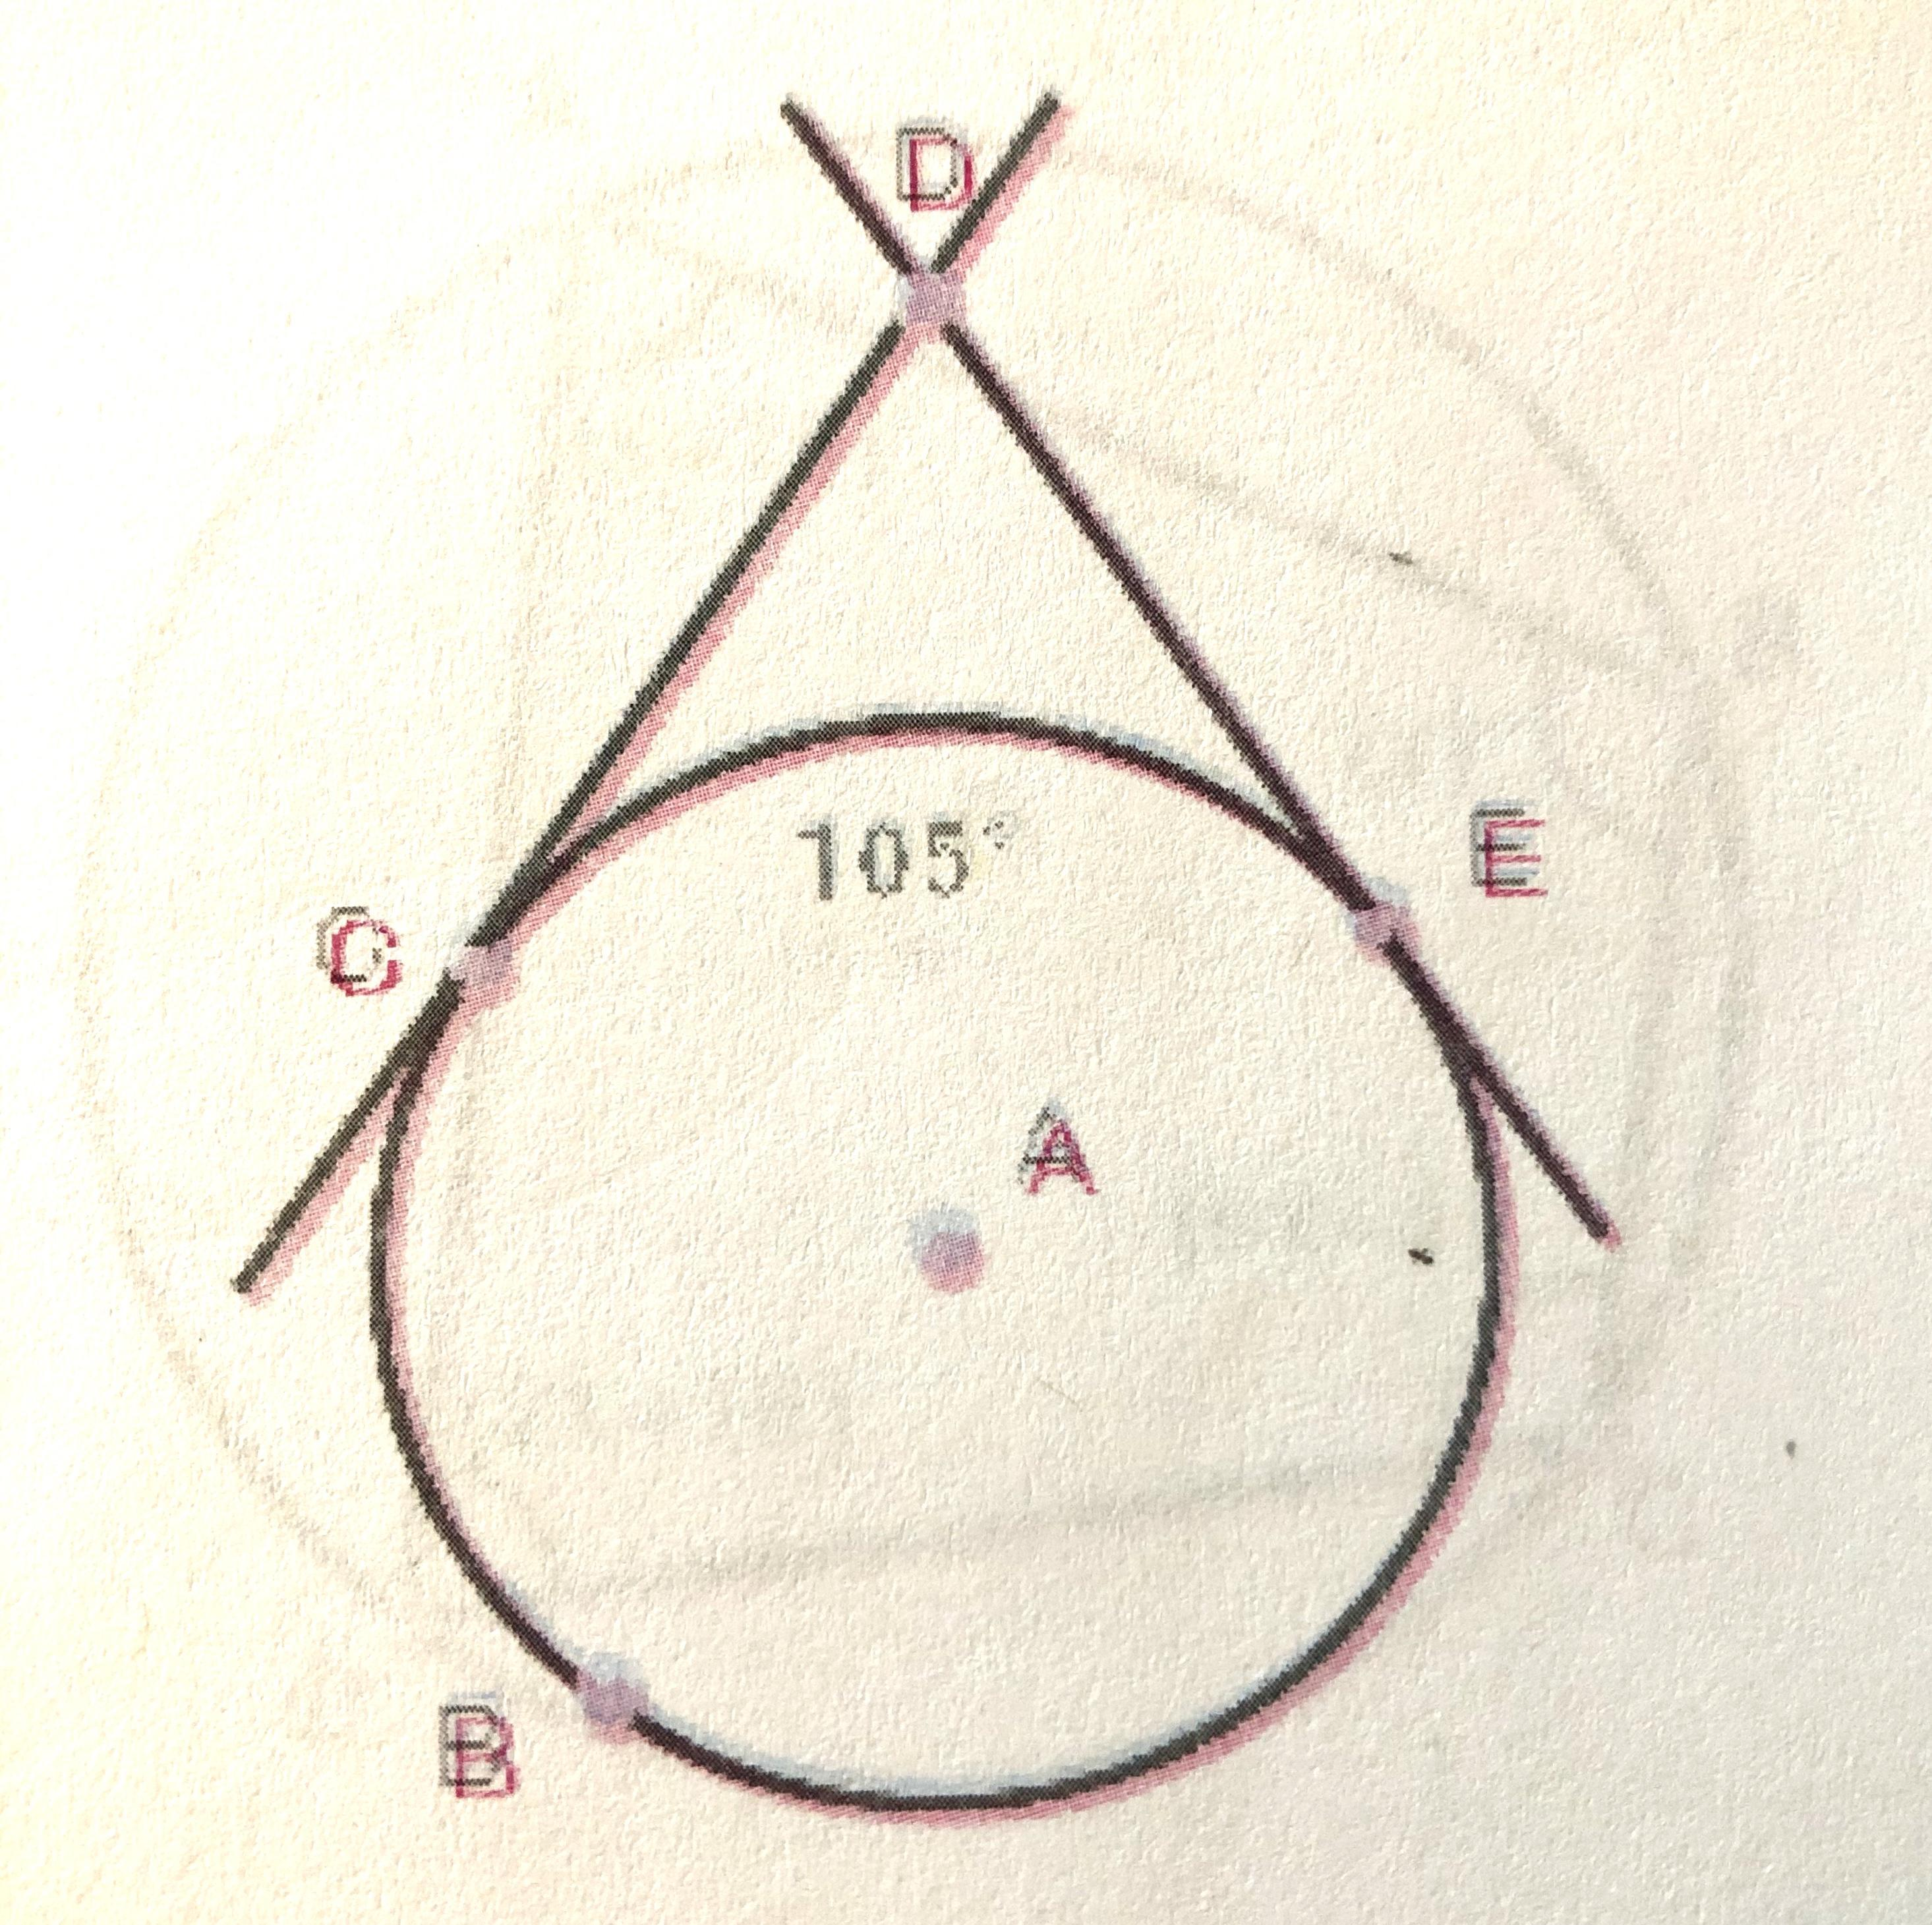 Lines Cd And De Are Tangent To Circle A As Shown Below If